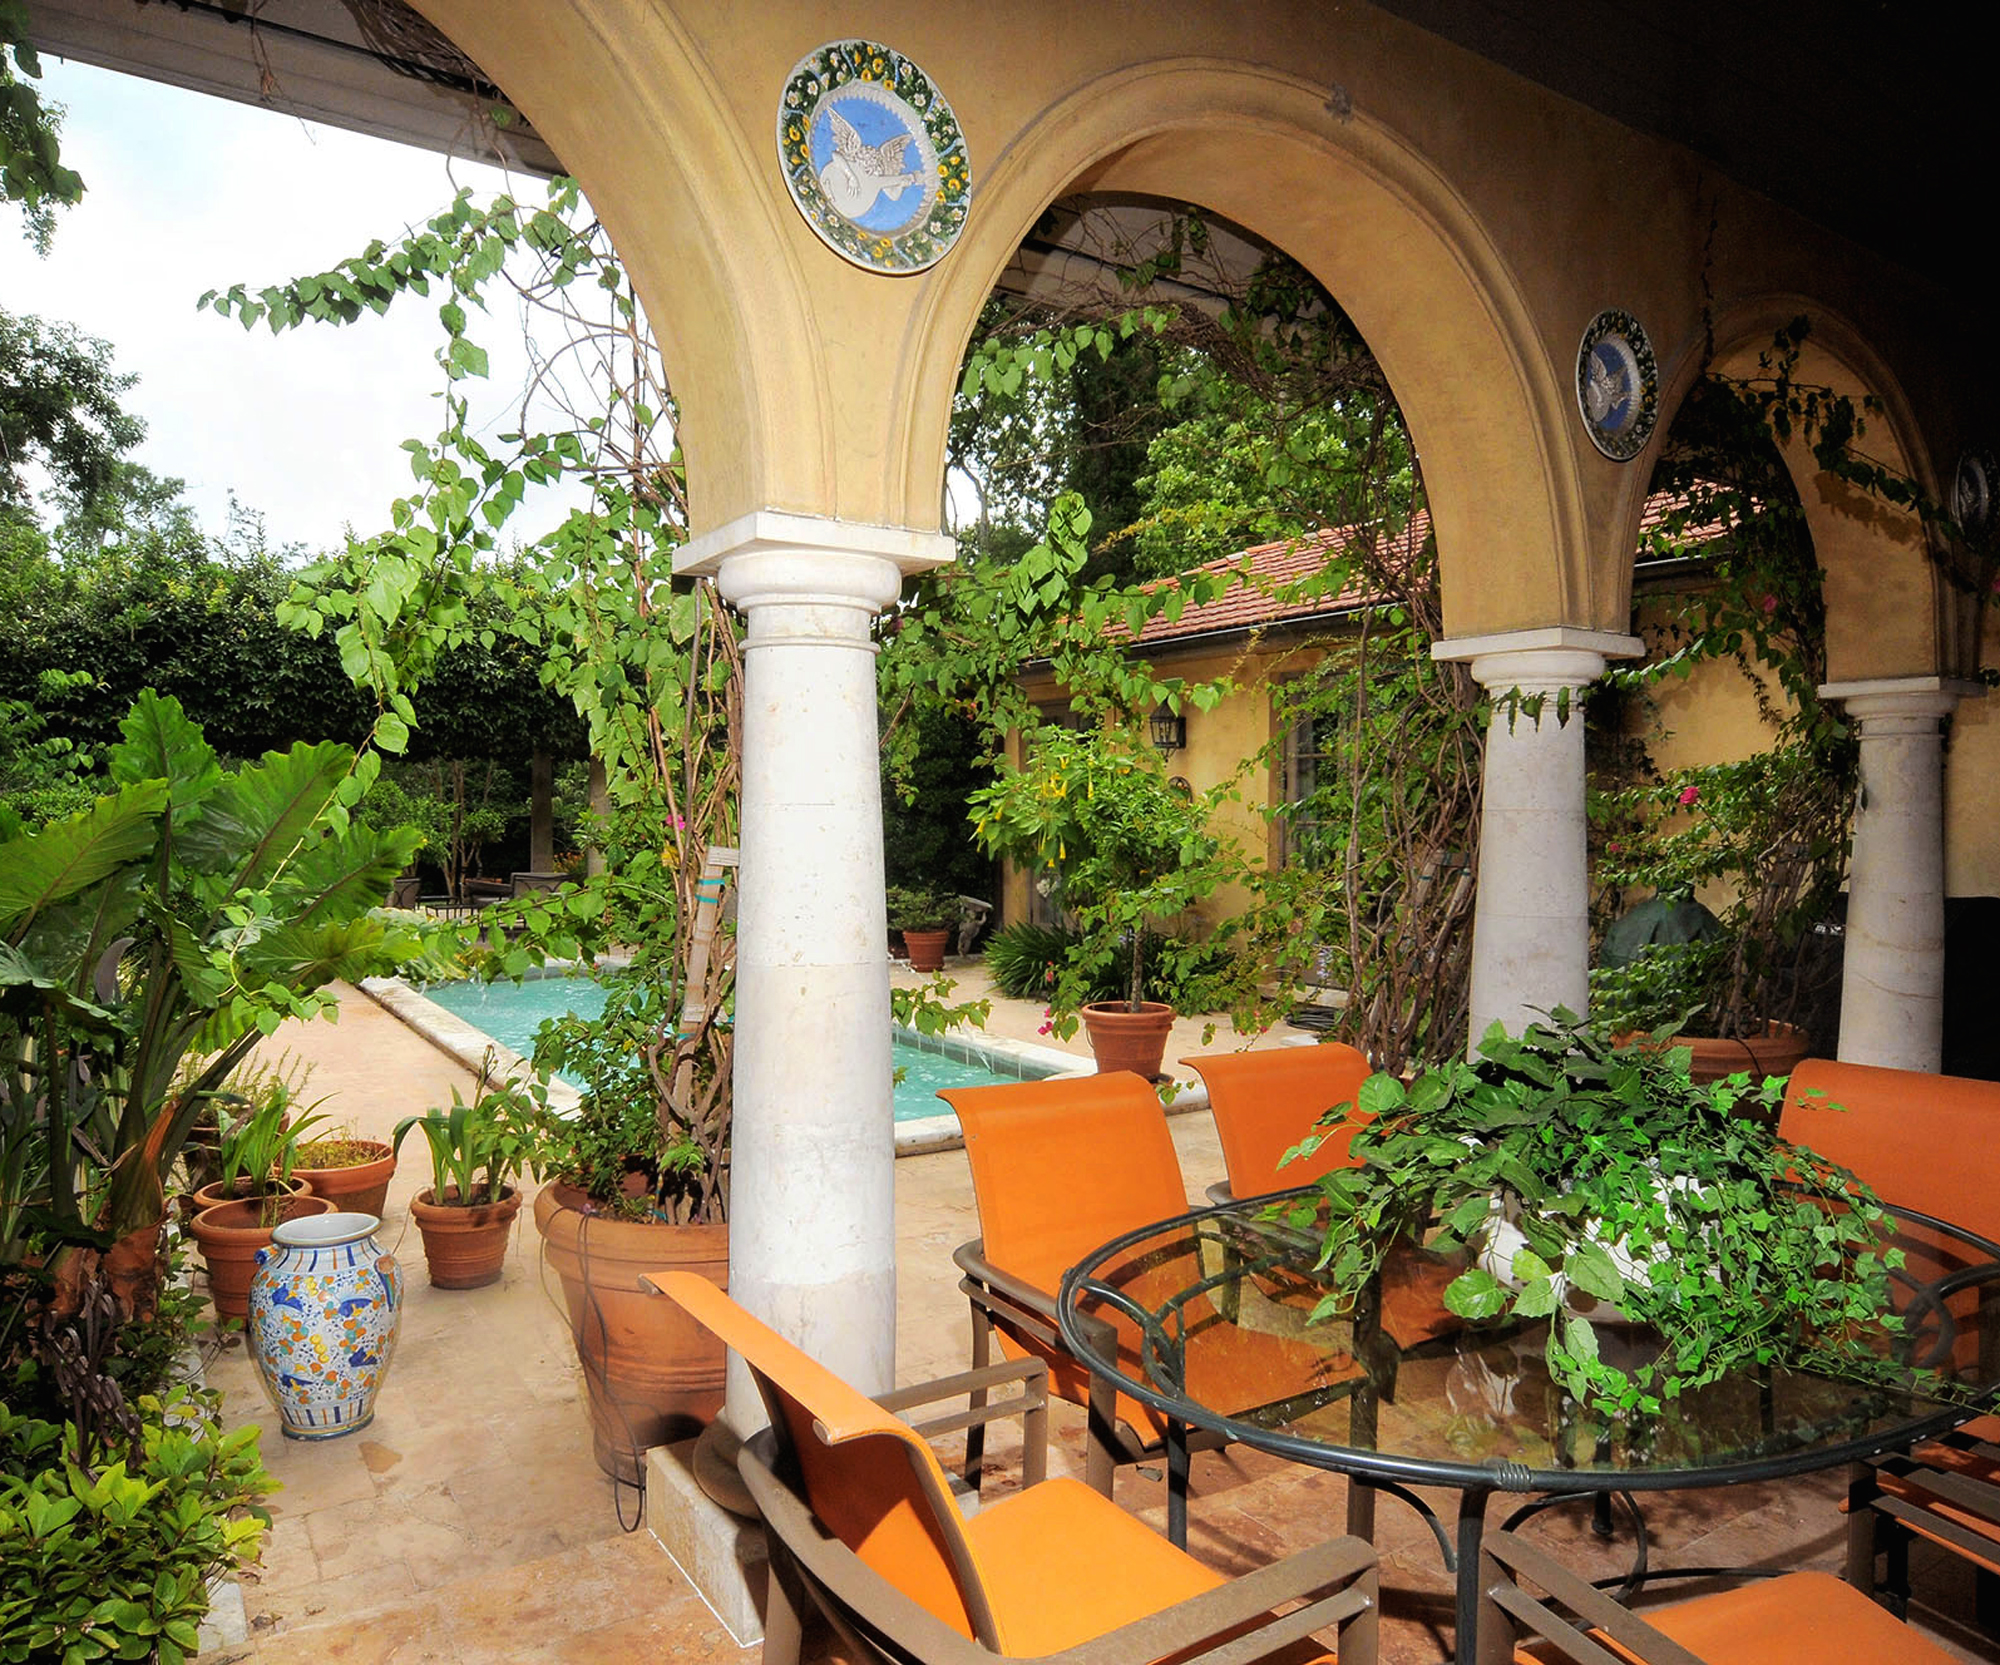 Tuscan_Kirtland_Loggia to pool_2000x1665_Edit016.jpg